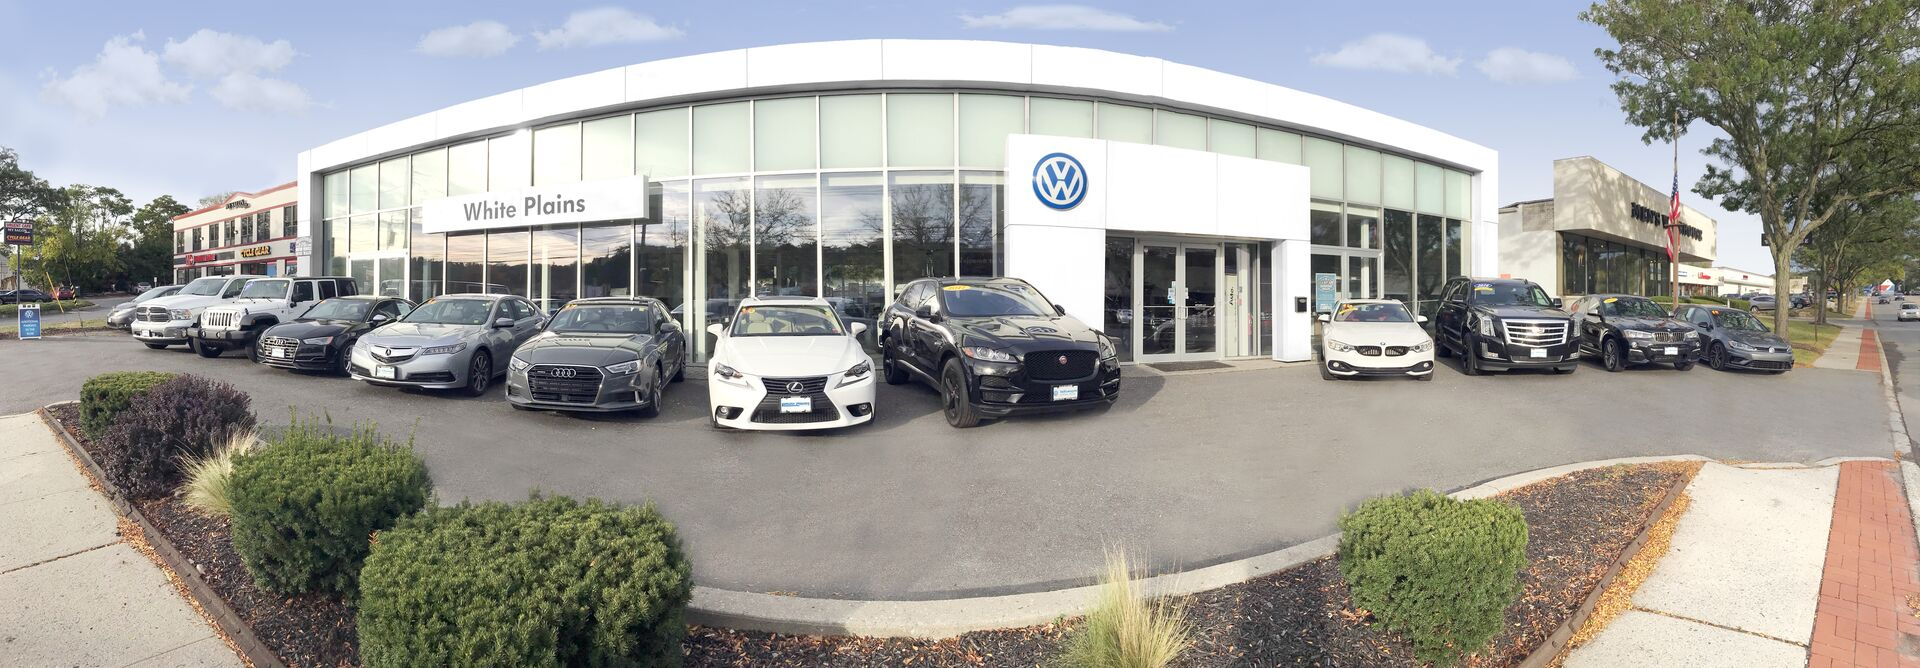 White Plains Volkswagen